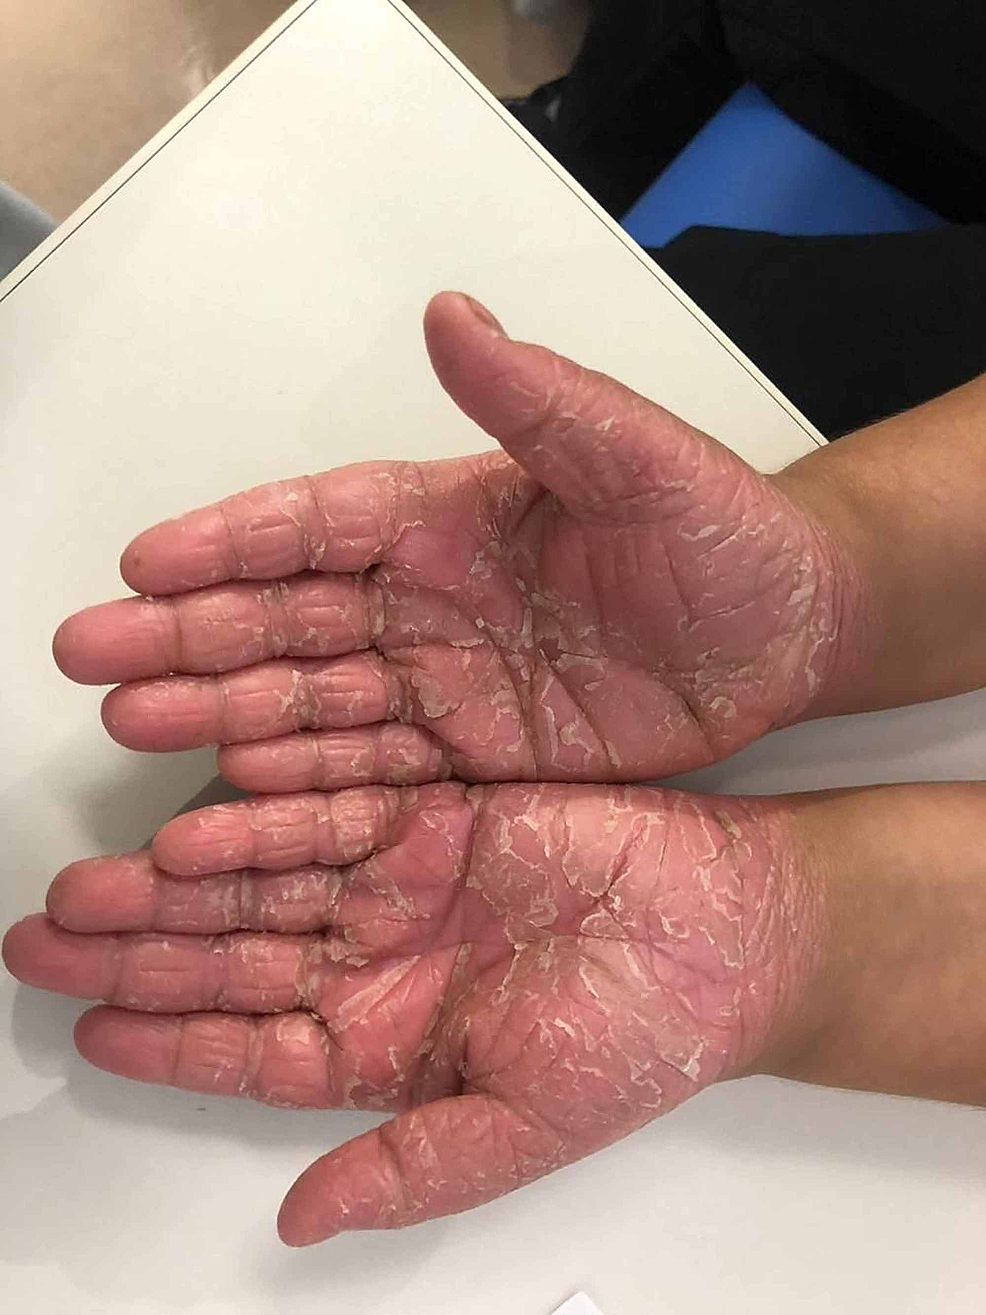 Erythematous-hyperkeratotic-skin-plaques-and-papules-with-scales-over-thepalmar-aspect-of-both-hands.